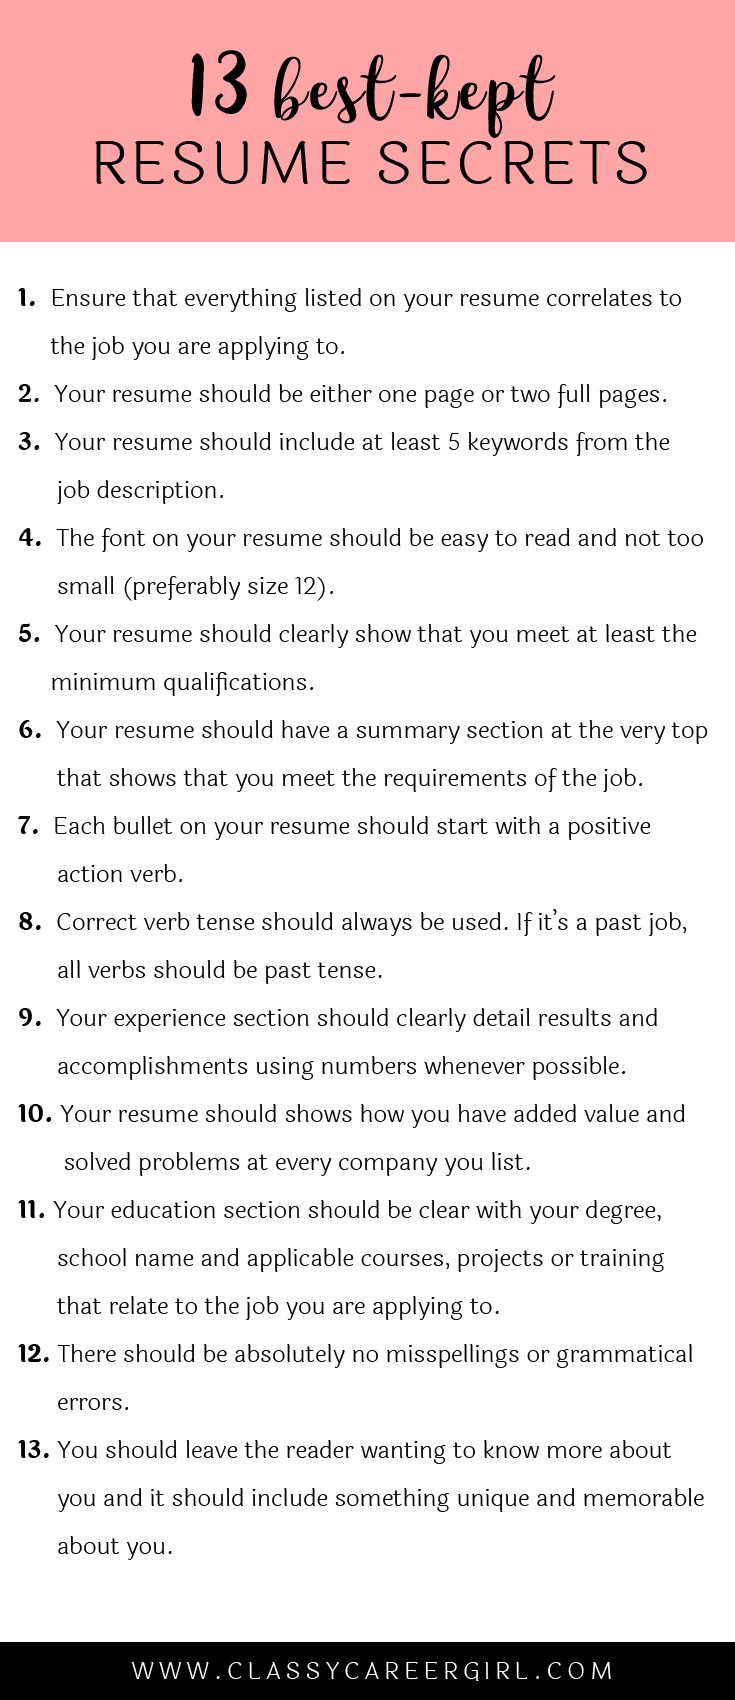 Opposenewapstandardsus  Prepossessing  Ideas About Resume On Pinterest  Cv Format Resume  With Heavenly Some Hiring Managers Will Toss Your Resume Out If You Dont Know These  With Comely Consulting Resume Also Resume For No Experience In Addition Nursing Assistant Resume And Adjectives For Resumes As Well As Good Resume Fonts Additionally Objectives On A Resume From Pinterestcom With Opposenewapstandardsus  Heavenly  Ideas About Resume On Pinterest  Cv Format Resume  With Comely Some Hiring Managers Will Toss Your Resume Out If You Dont Know These  And Prepossessing Consulting Resume Also Resume For No Experience In Addition Nursing Assistant Resume From Pinterestcom